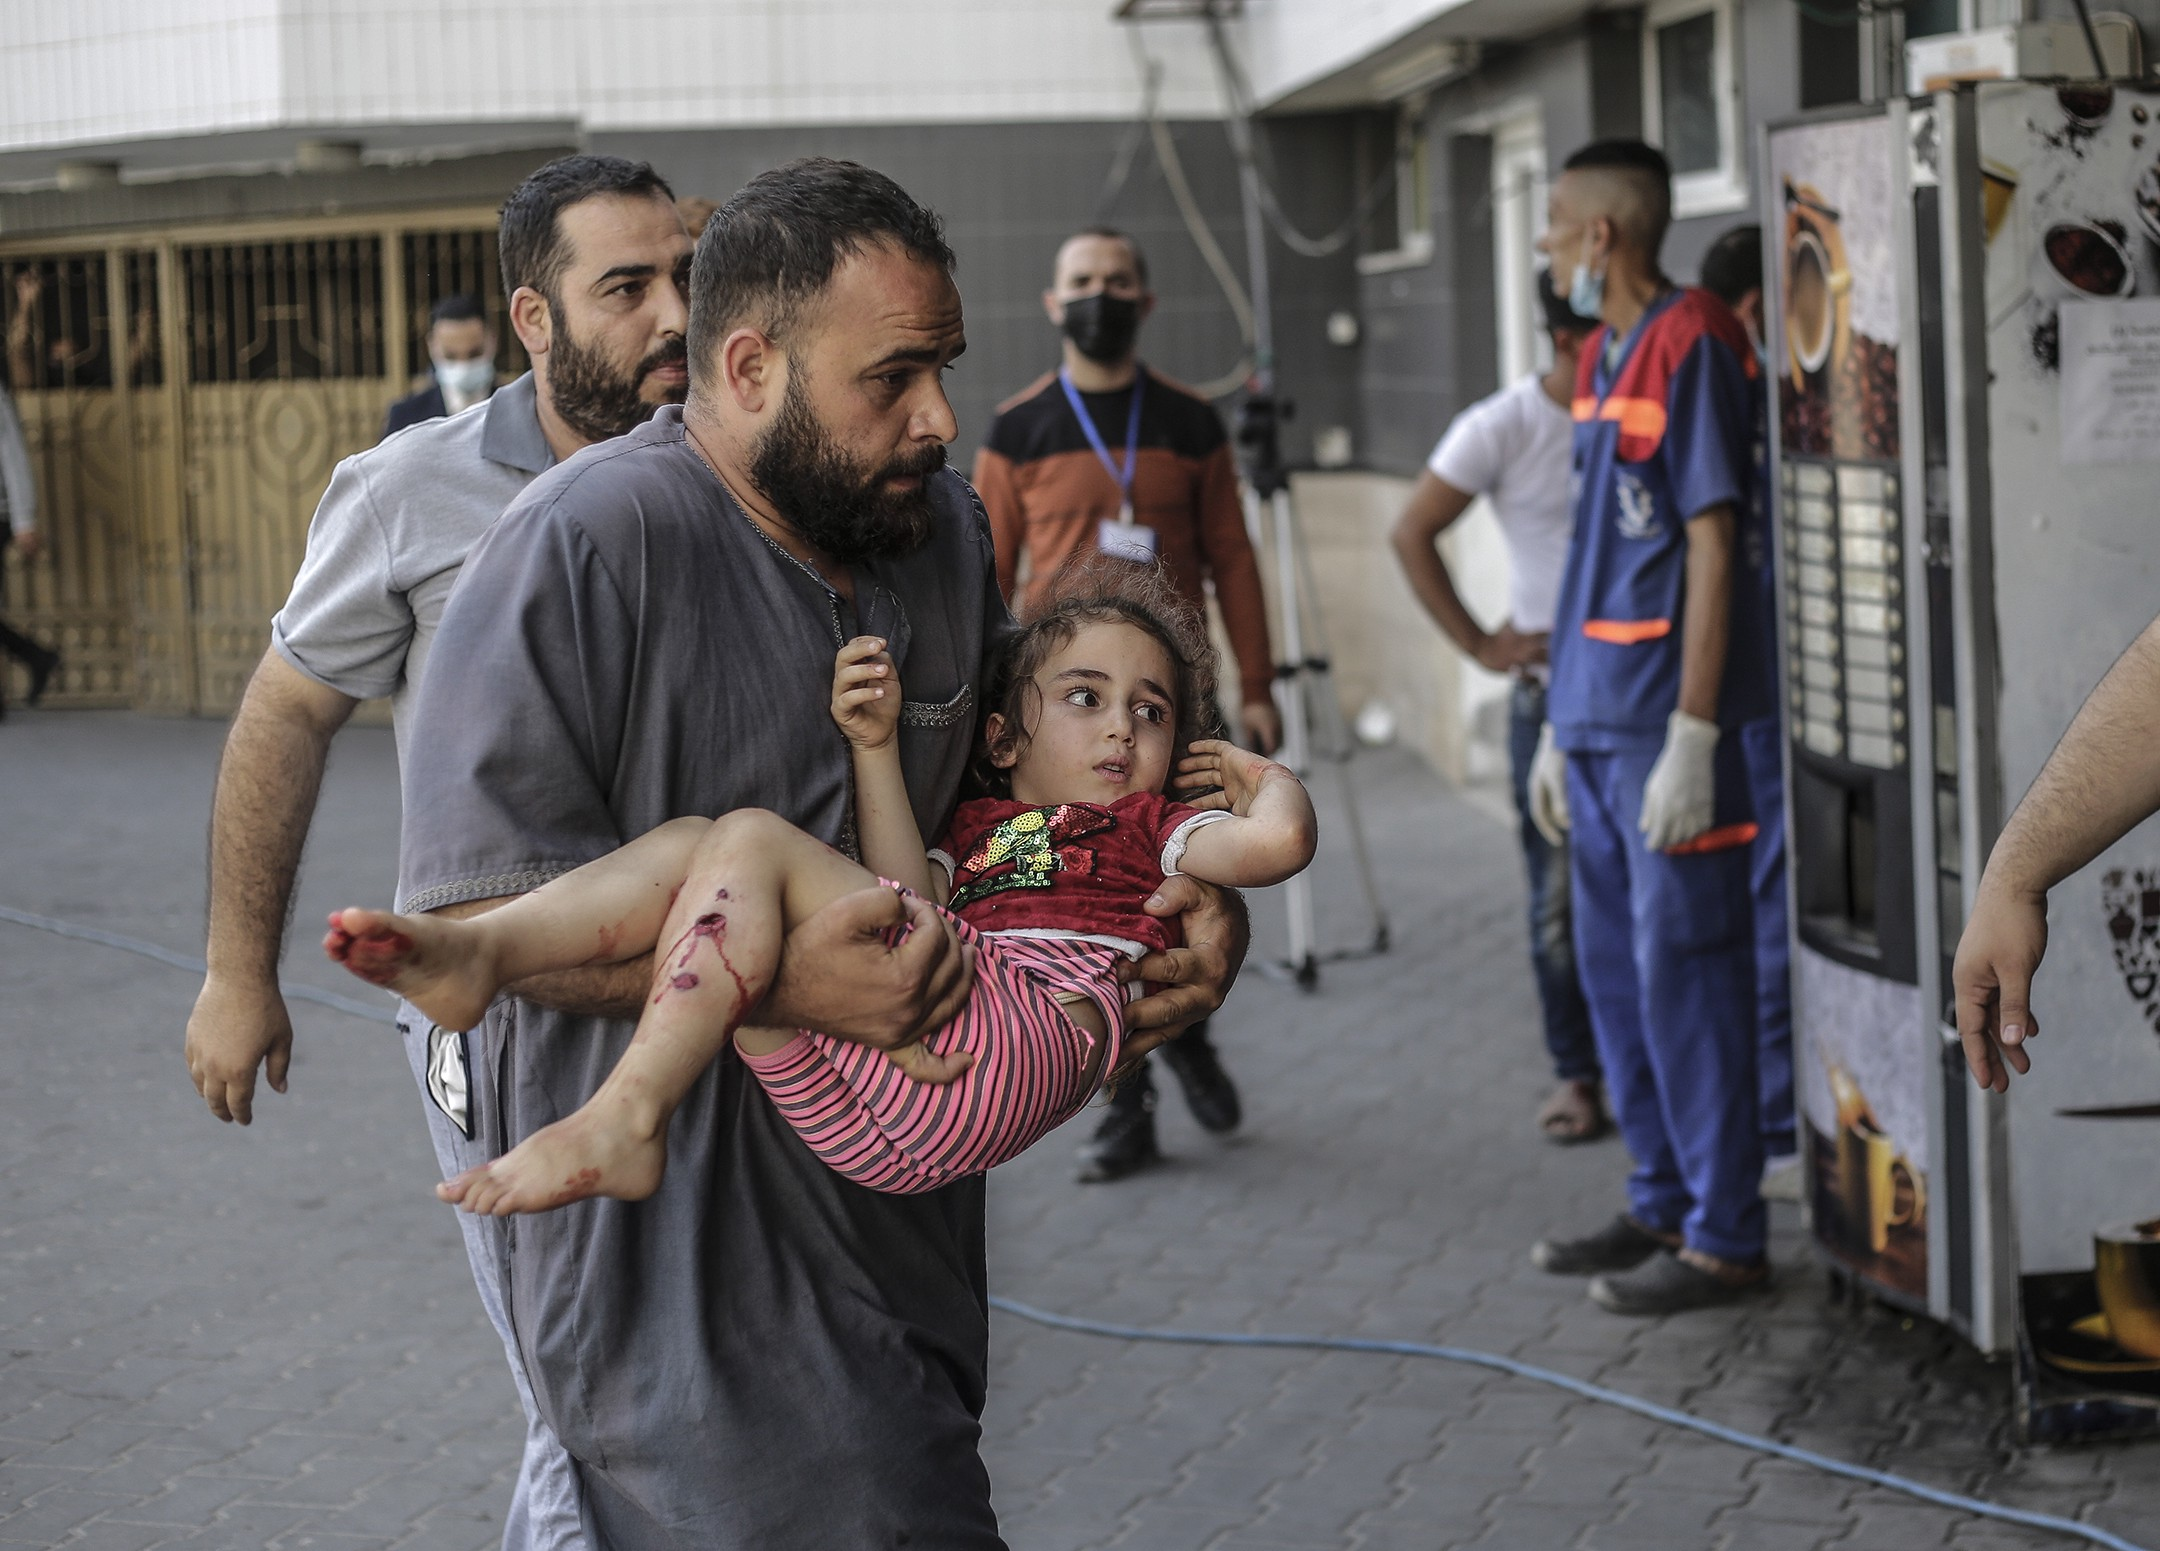 A wounded Palestinian girl is being brought to Shifa Hospital to receive treatment—12 May 2021. (Photo by Mahmoud Issa / SOPA Images/Sipa USA)(Sipa via AP Images).